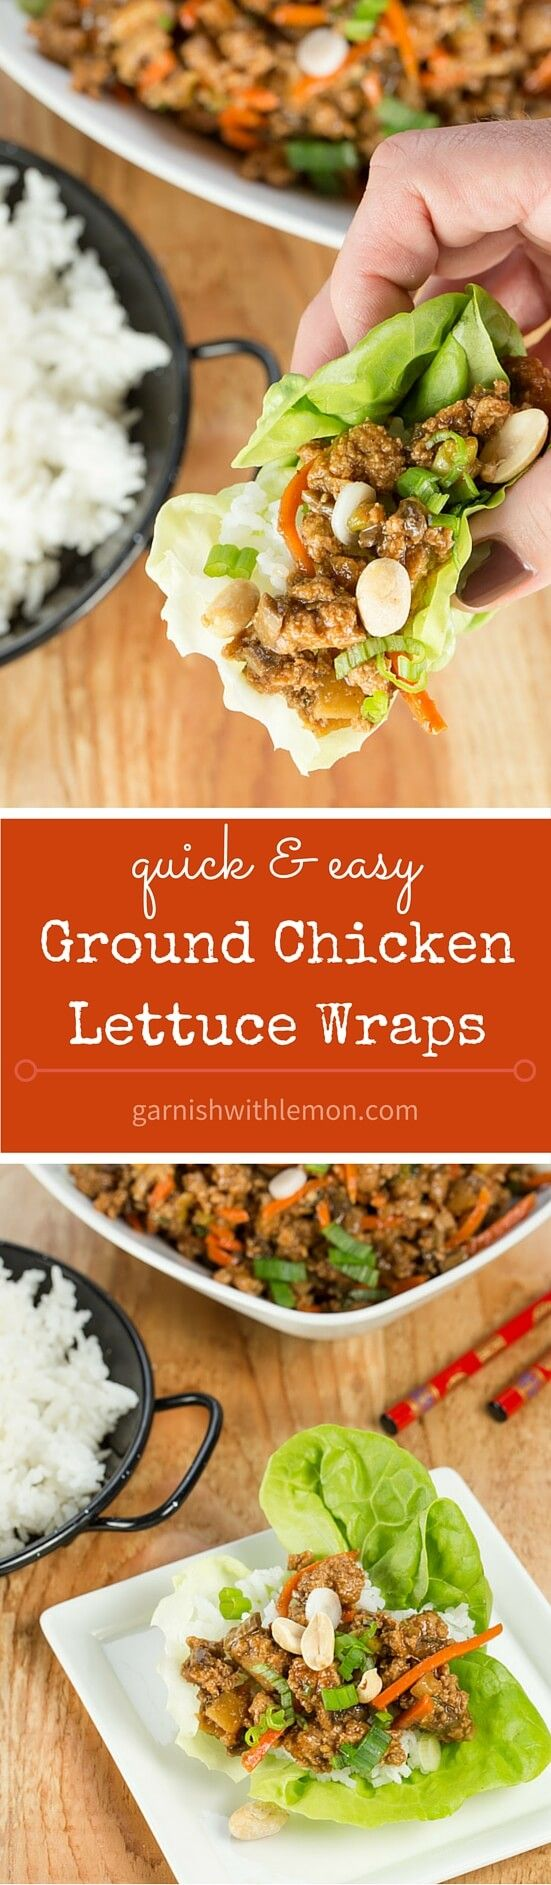 Need an easy and healthy weeknight meal? These Ground Chicken Lettuce Wraps are super flavorful and come together quickly. Leftovers reheat well, too! ~ http://www.garnishwithlemon.com: